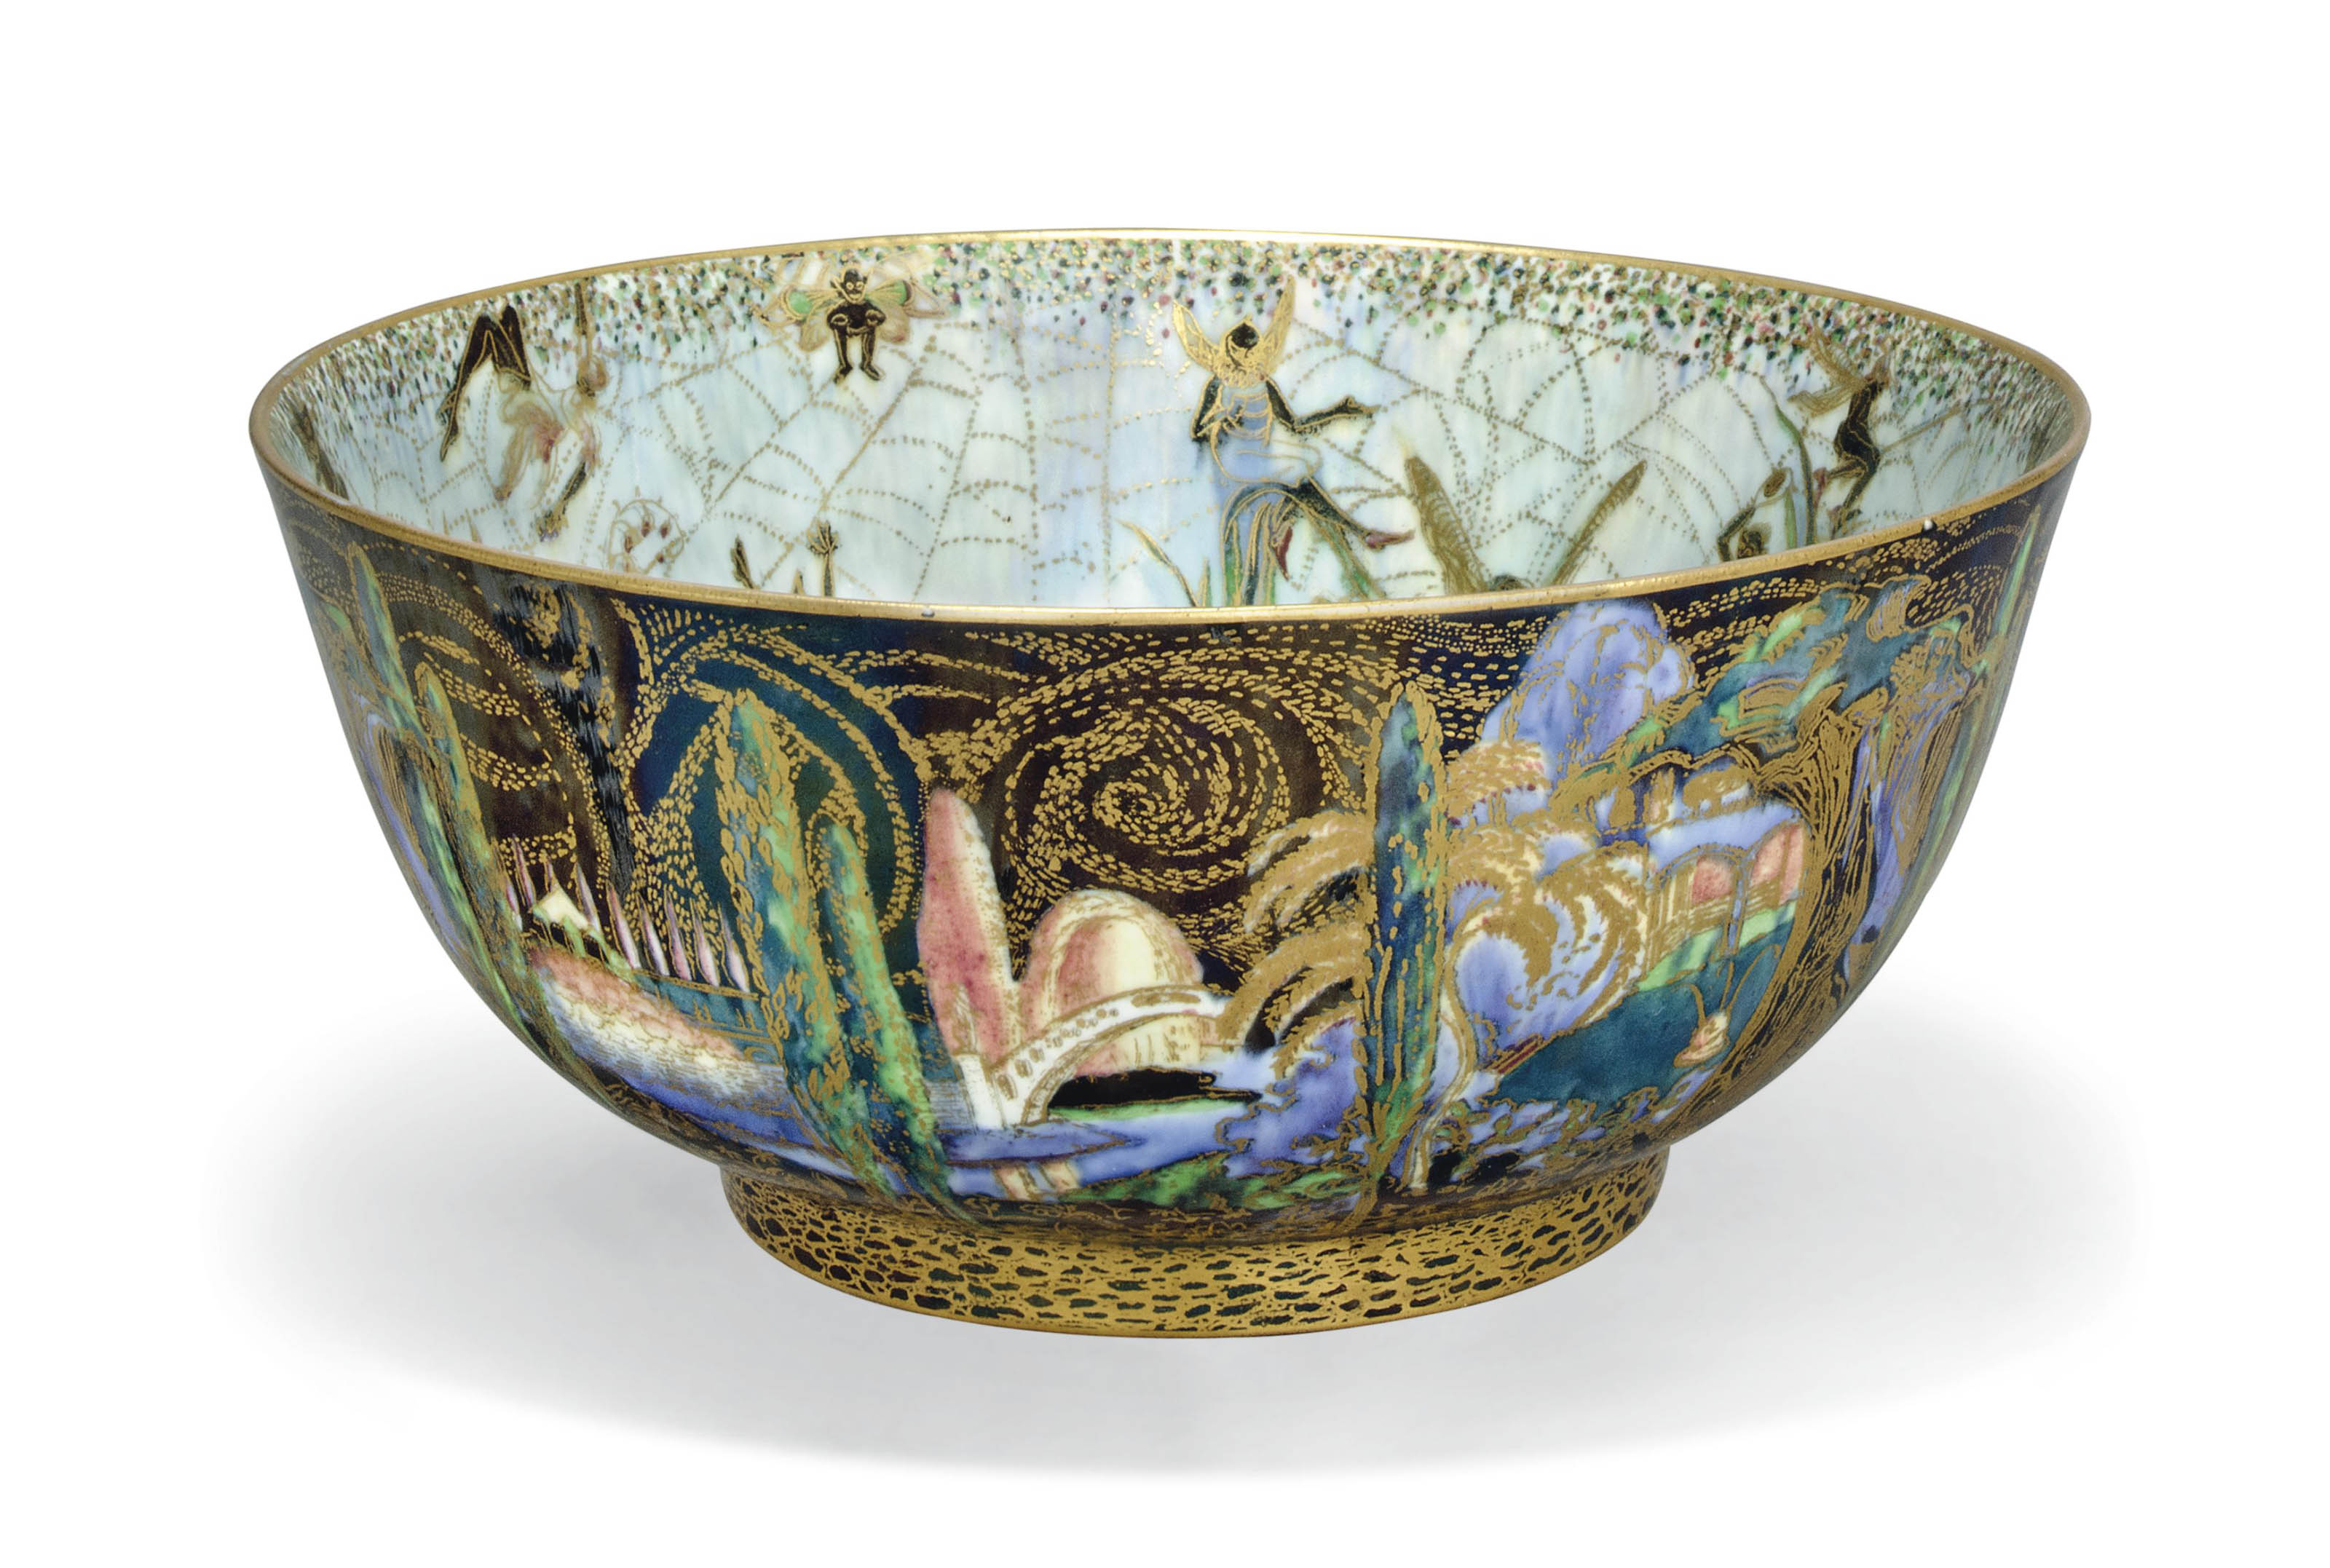 A WEDGWOOD FAIRYLAND LUSTRE 'ELVES AND BELL BRANCH' IMPERIAL BOWL DESIGNED BY DAISY MAKEIG-JONES